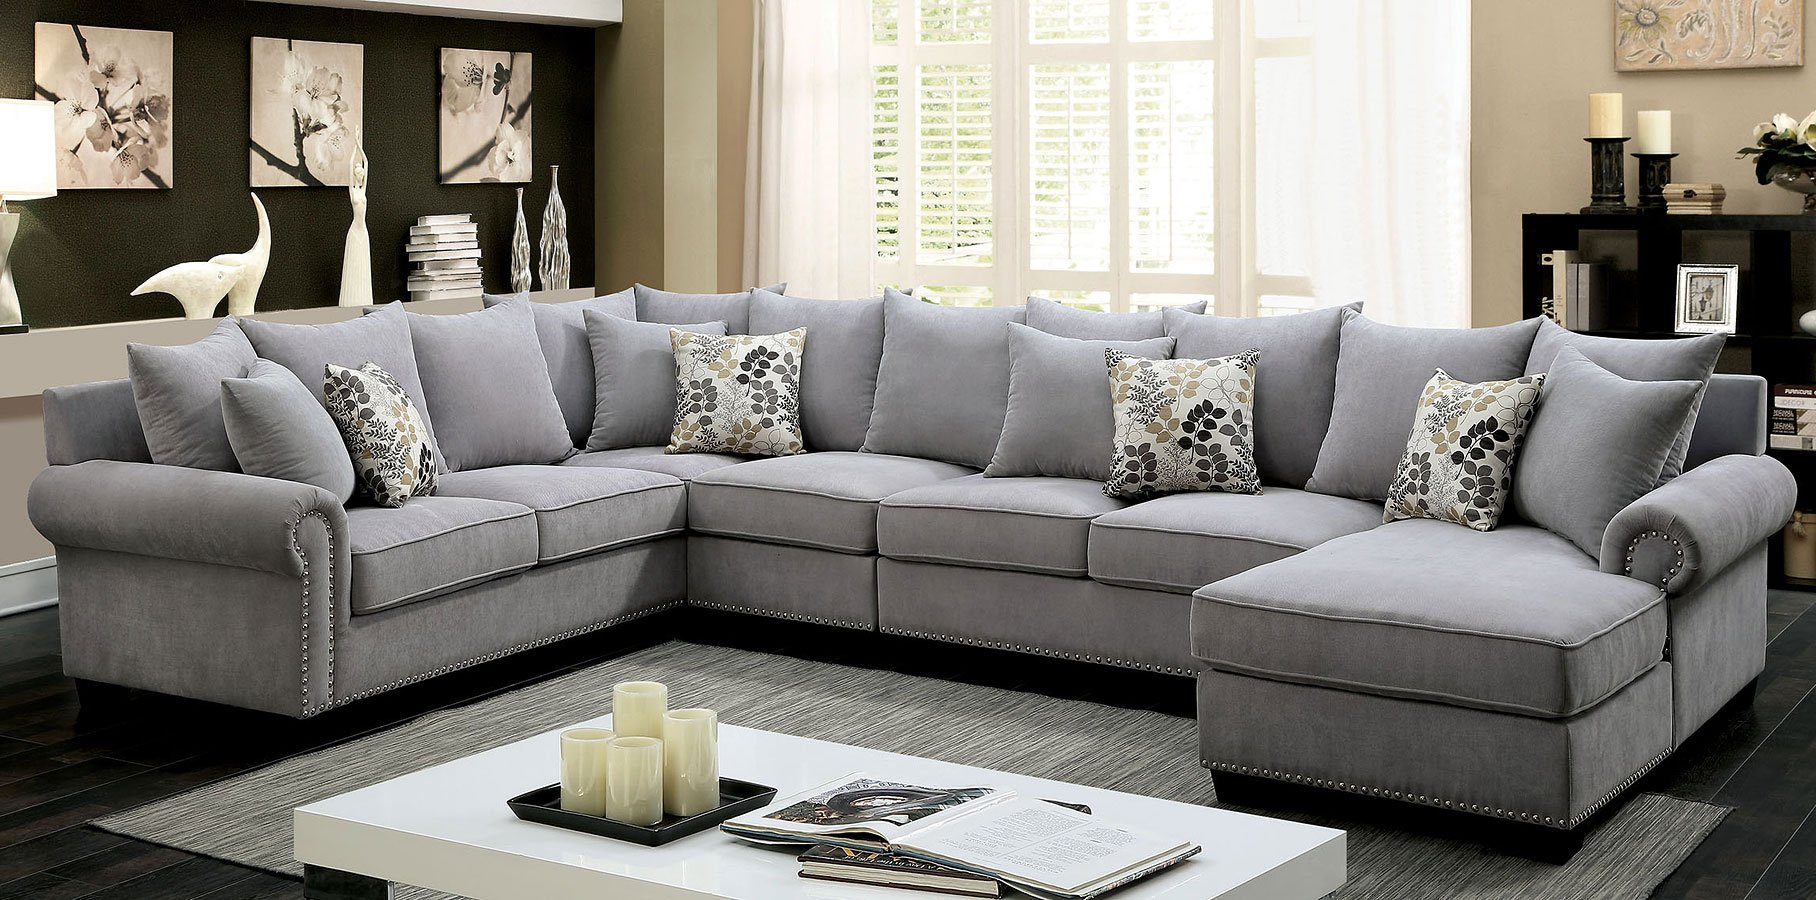 sectional living room sets Skyler Sectional Living Room Set (Gray)   Living Room Furniture  sectional living room sets